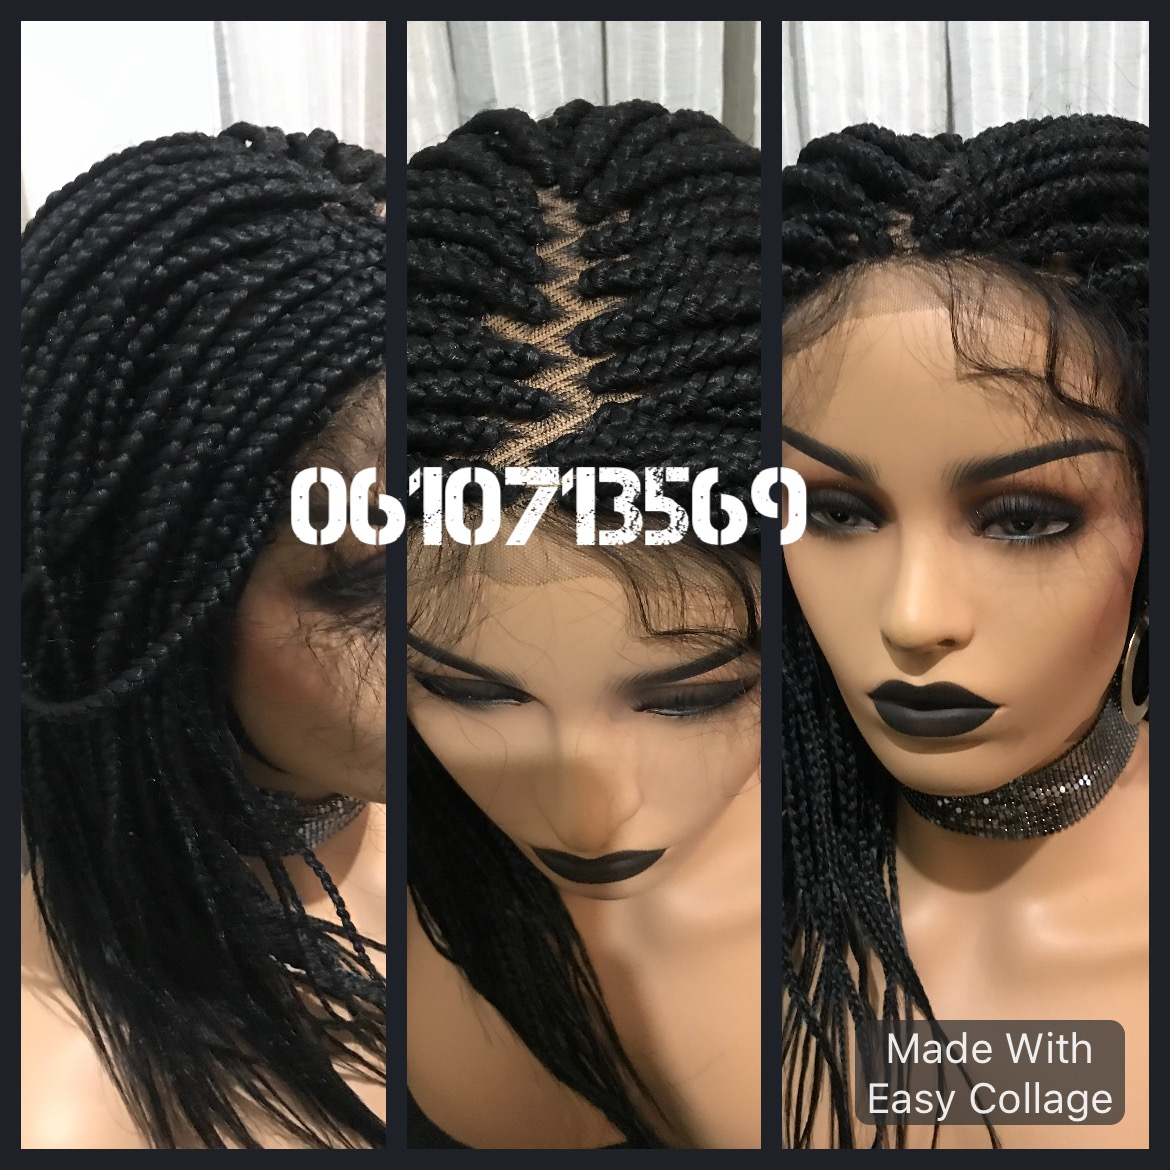 Lace front braid wigs and more